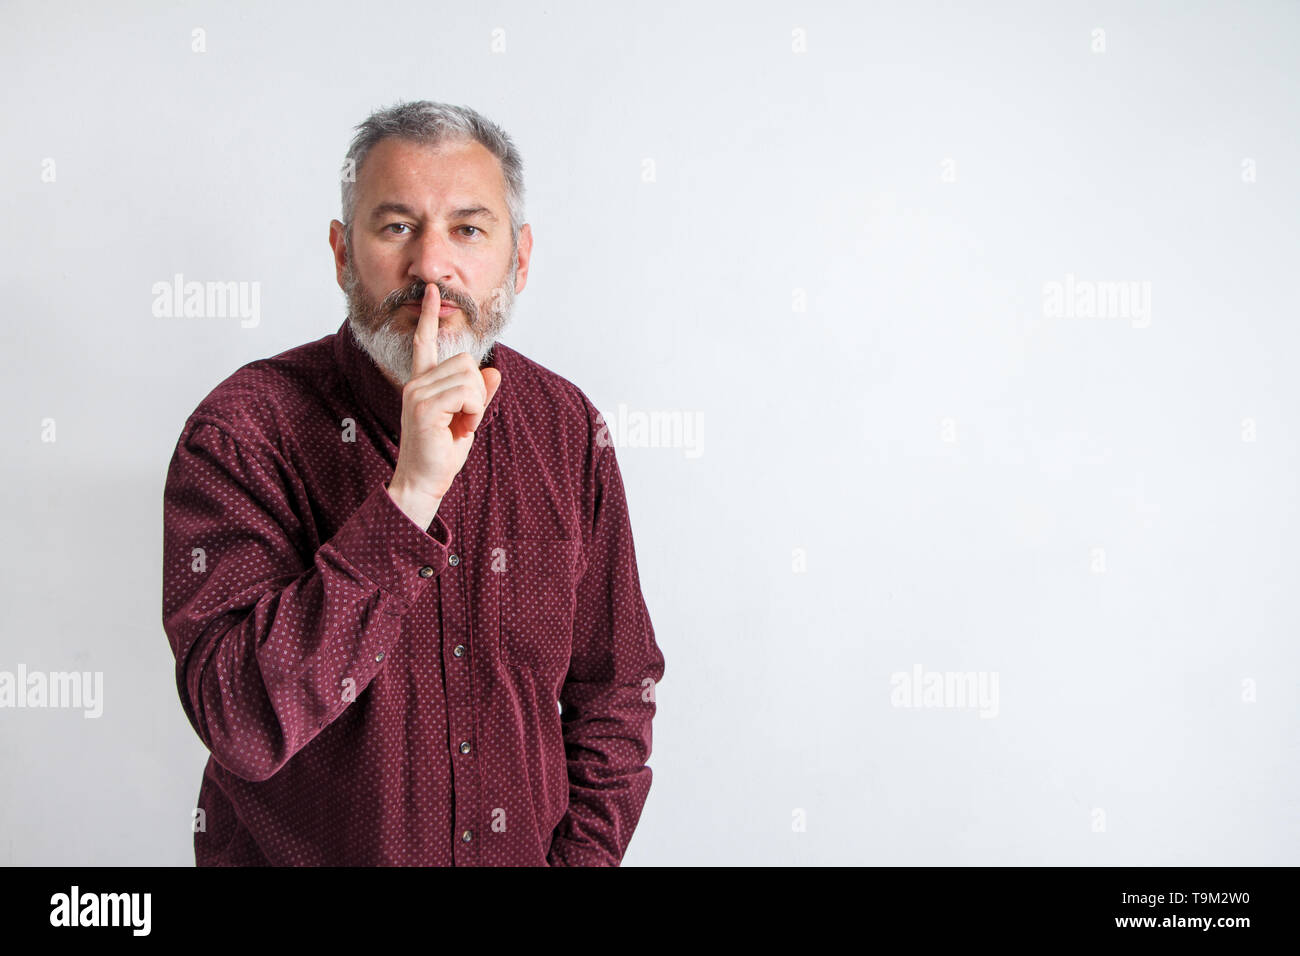 gray bearded man have the finger on lips as man gesturing shh sign, please be silent concept. - Stock Image